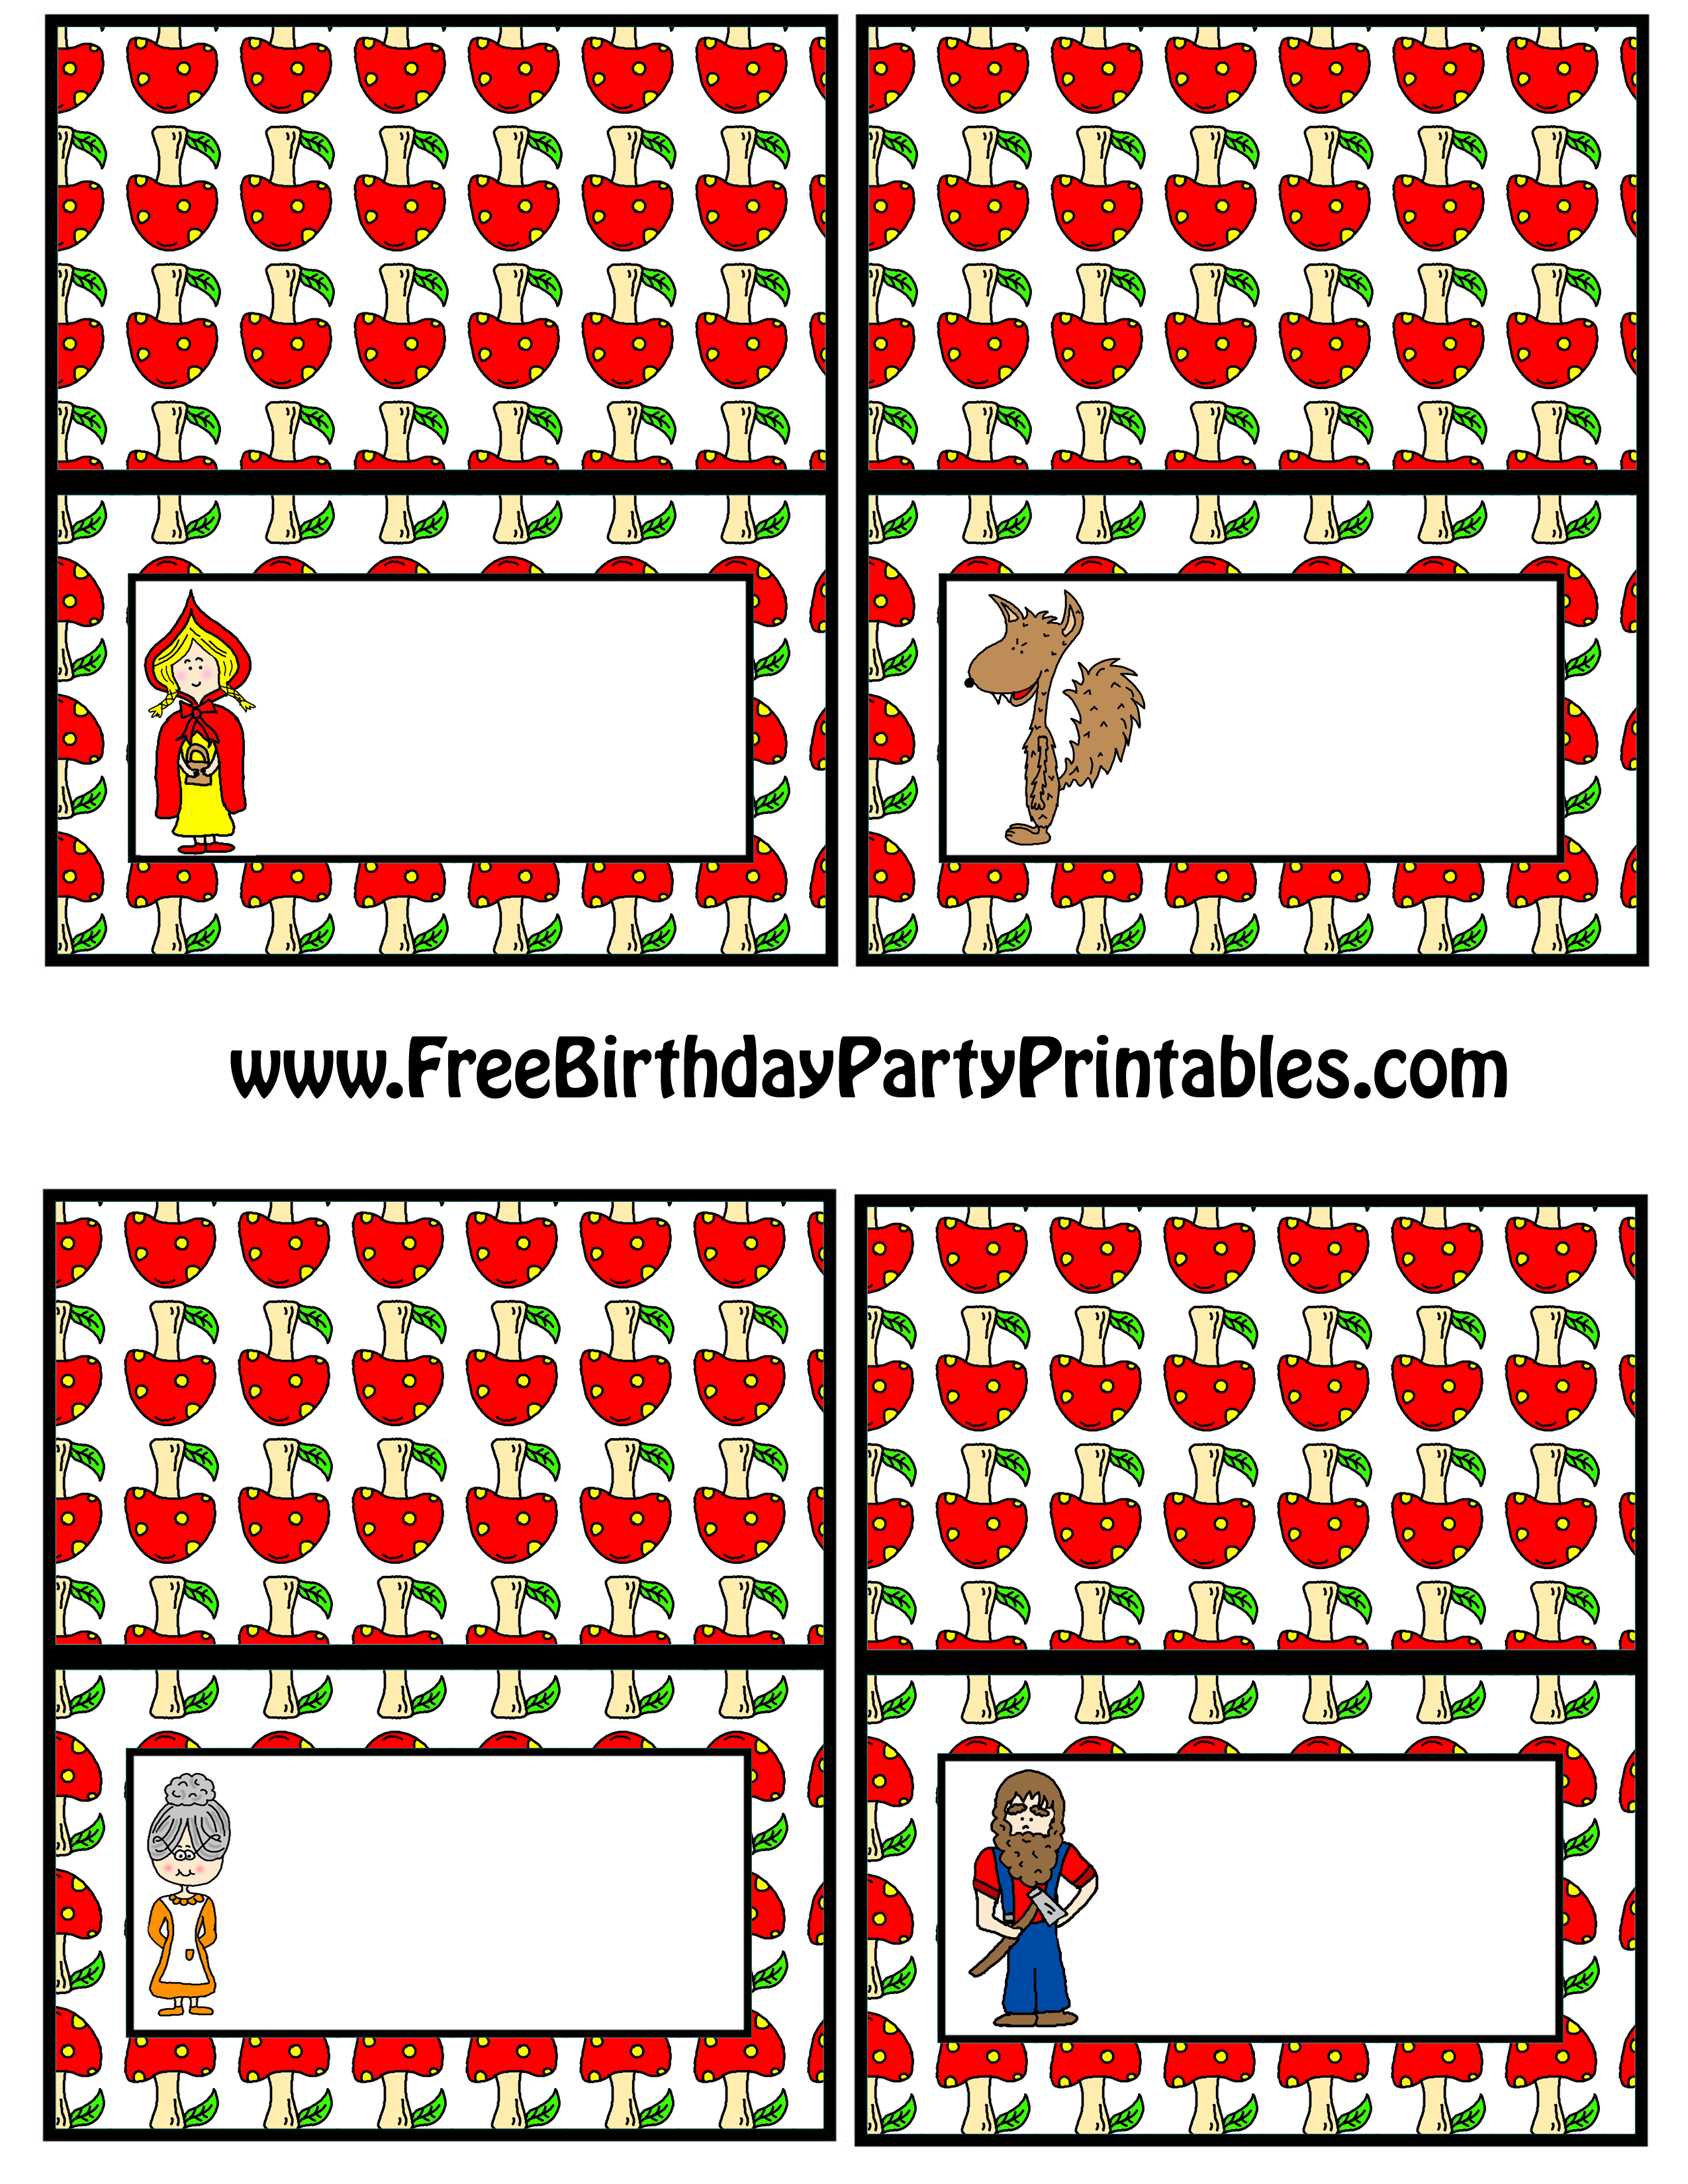 Little Red Riding Hood Printables Images & Pictures - Findpik